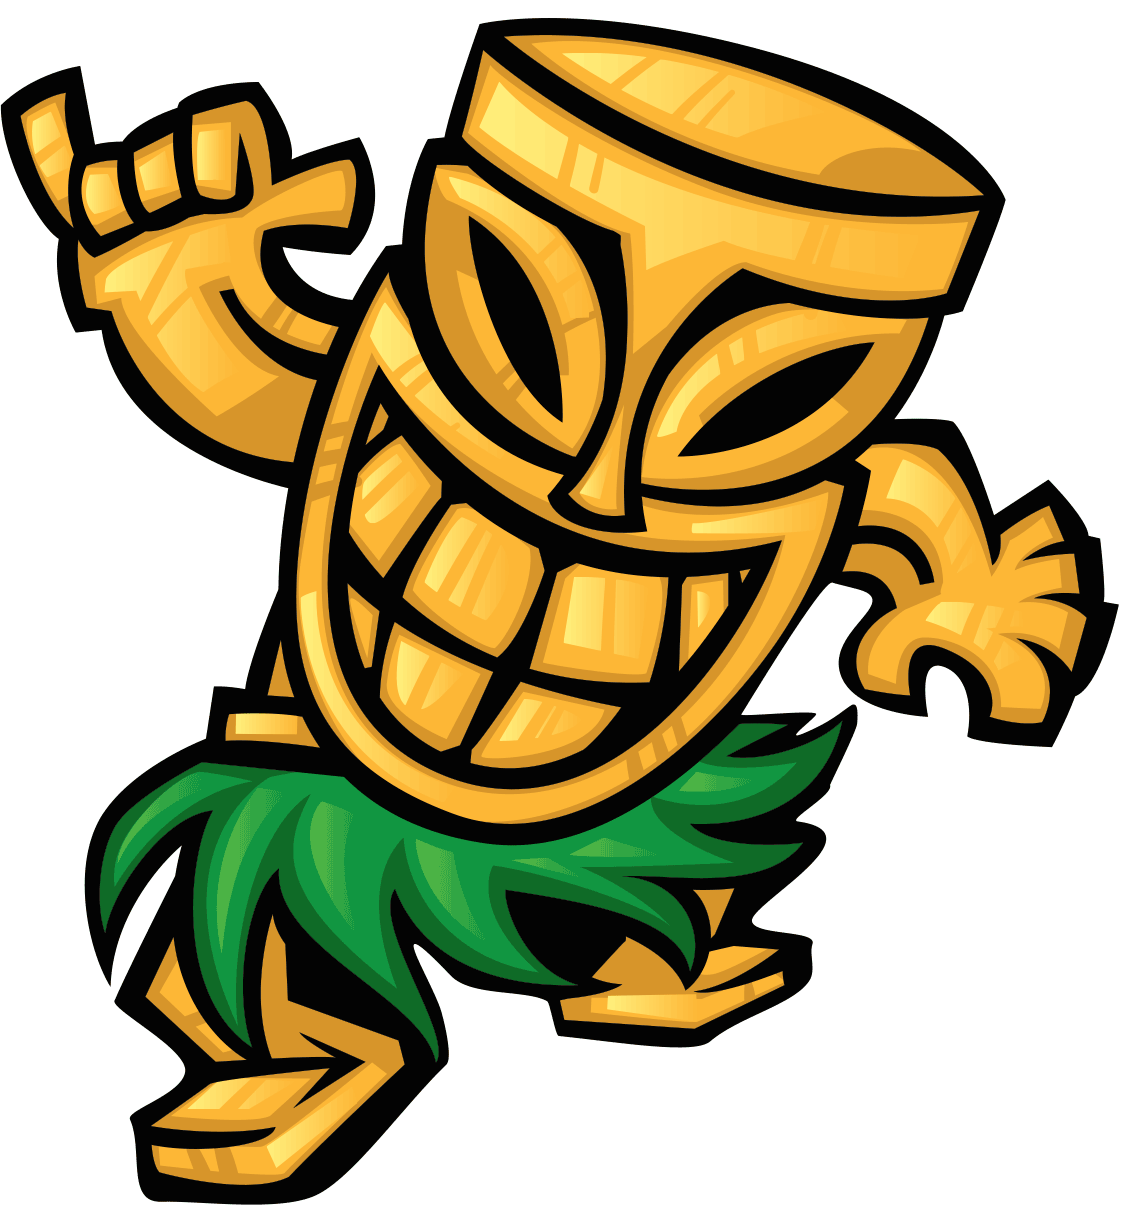 Tiki mask png. Bar cuisine of hawaii